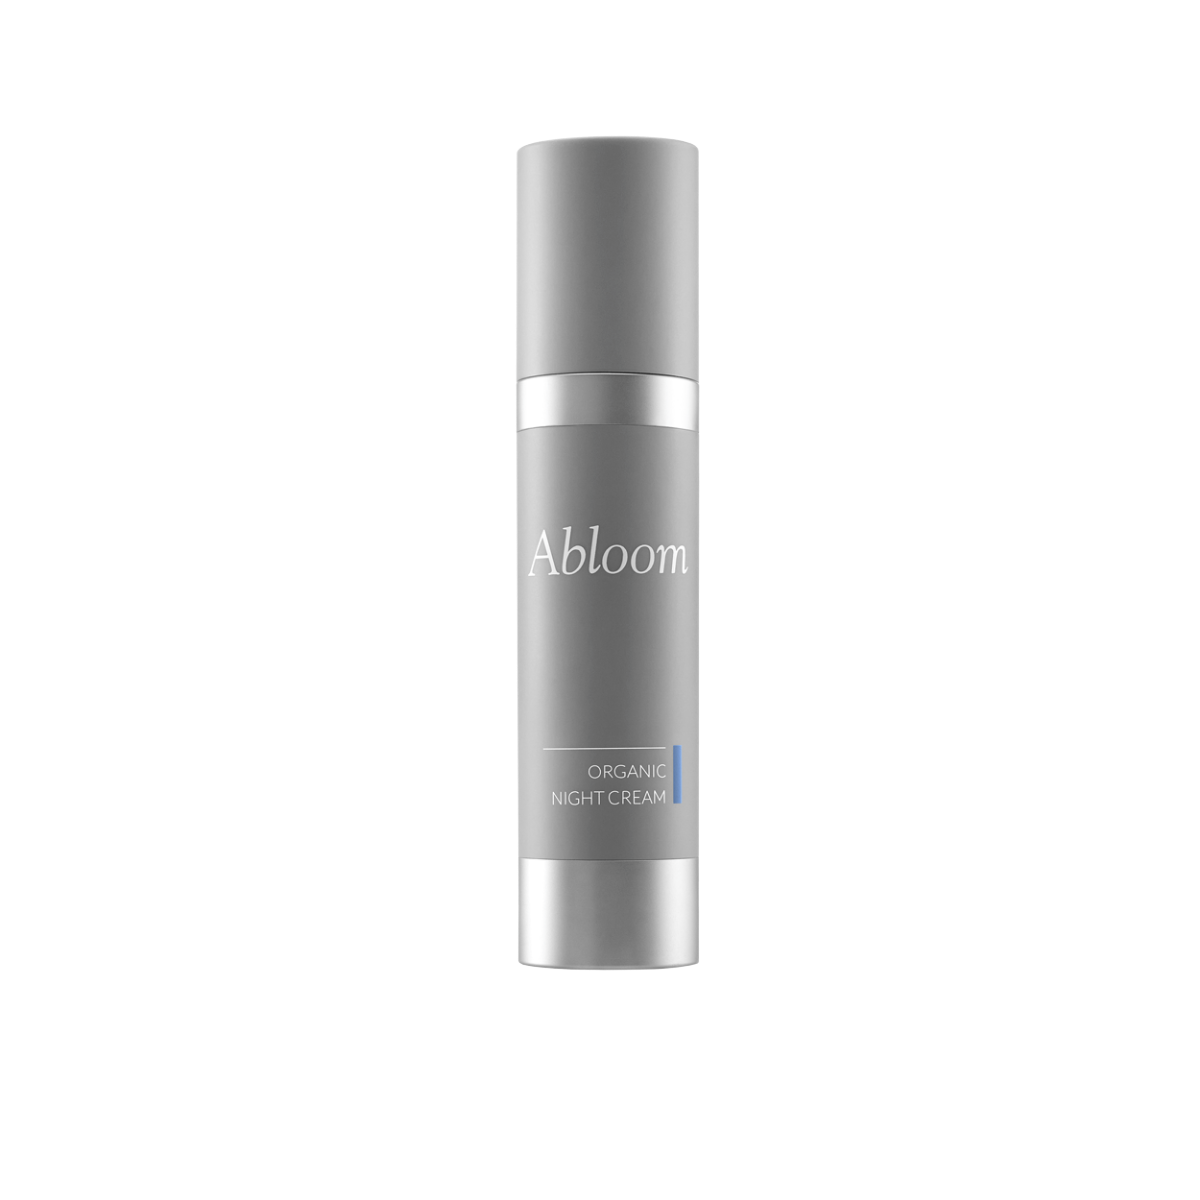 abloom_organic_night_cream_white_def